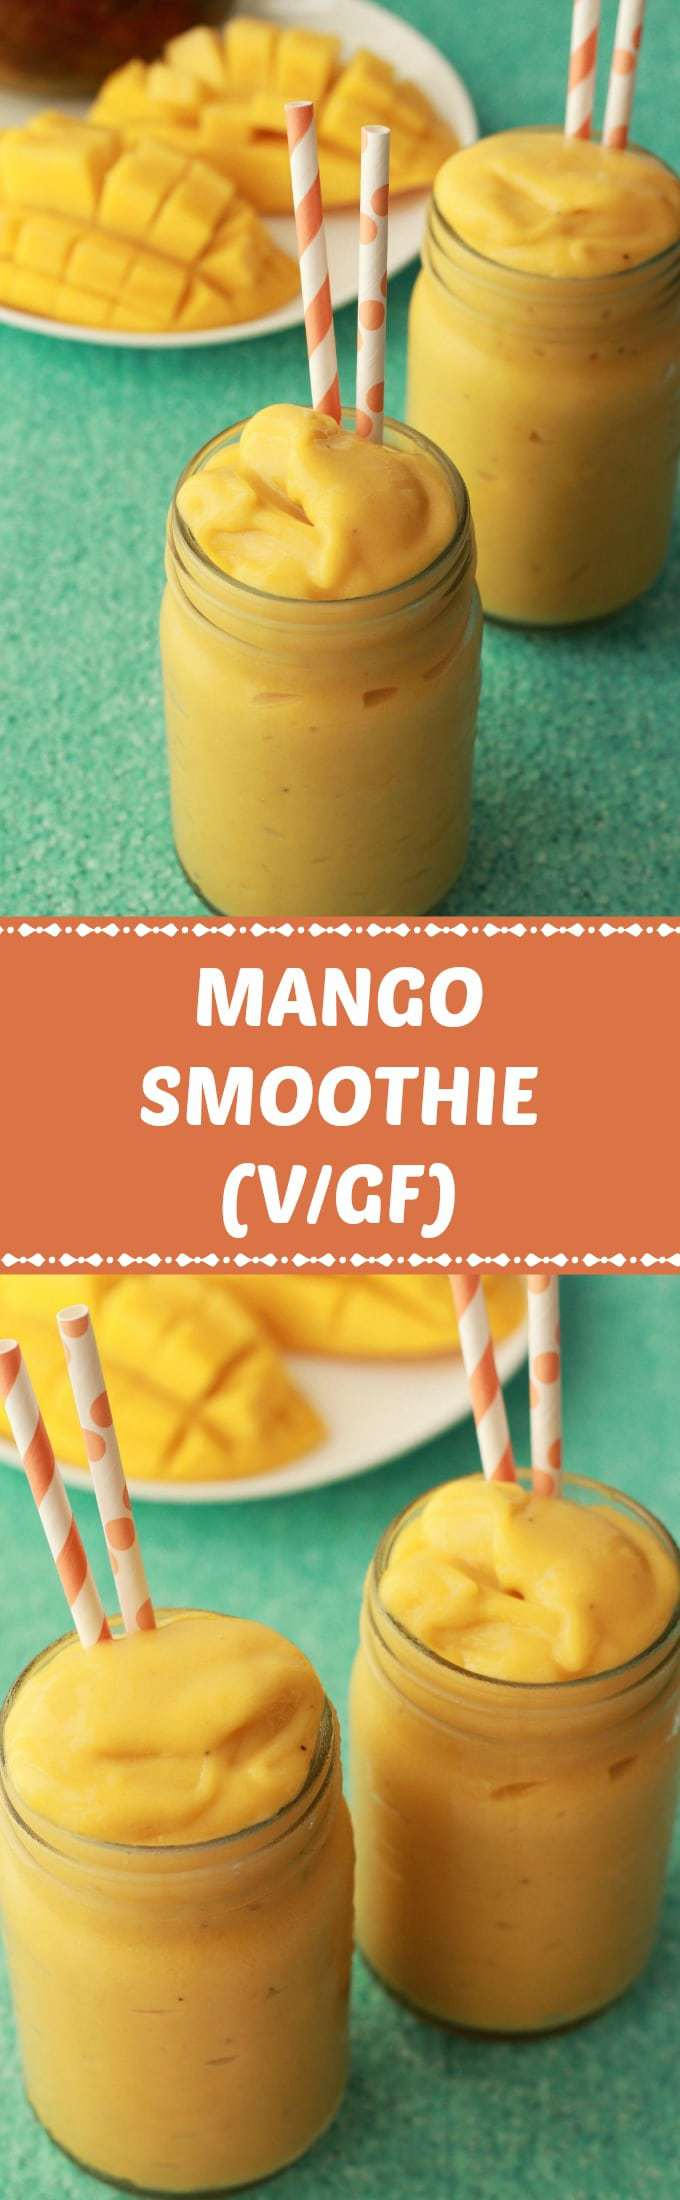 Ultra creamy and delicious mango smoothie! Just 2-ingredients and 5 minutes and you have the most delicious healthy breakfast shake. #vegan #lovingitvegan #smoothie #mangosmoothie #breakfast #fruit